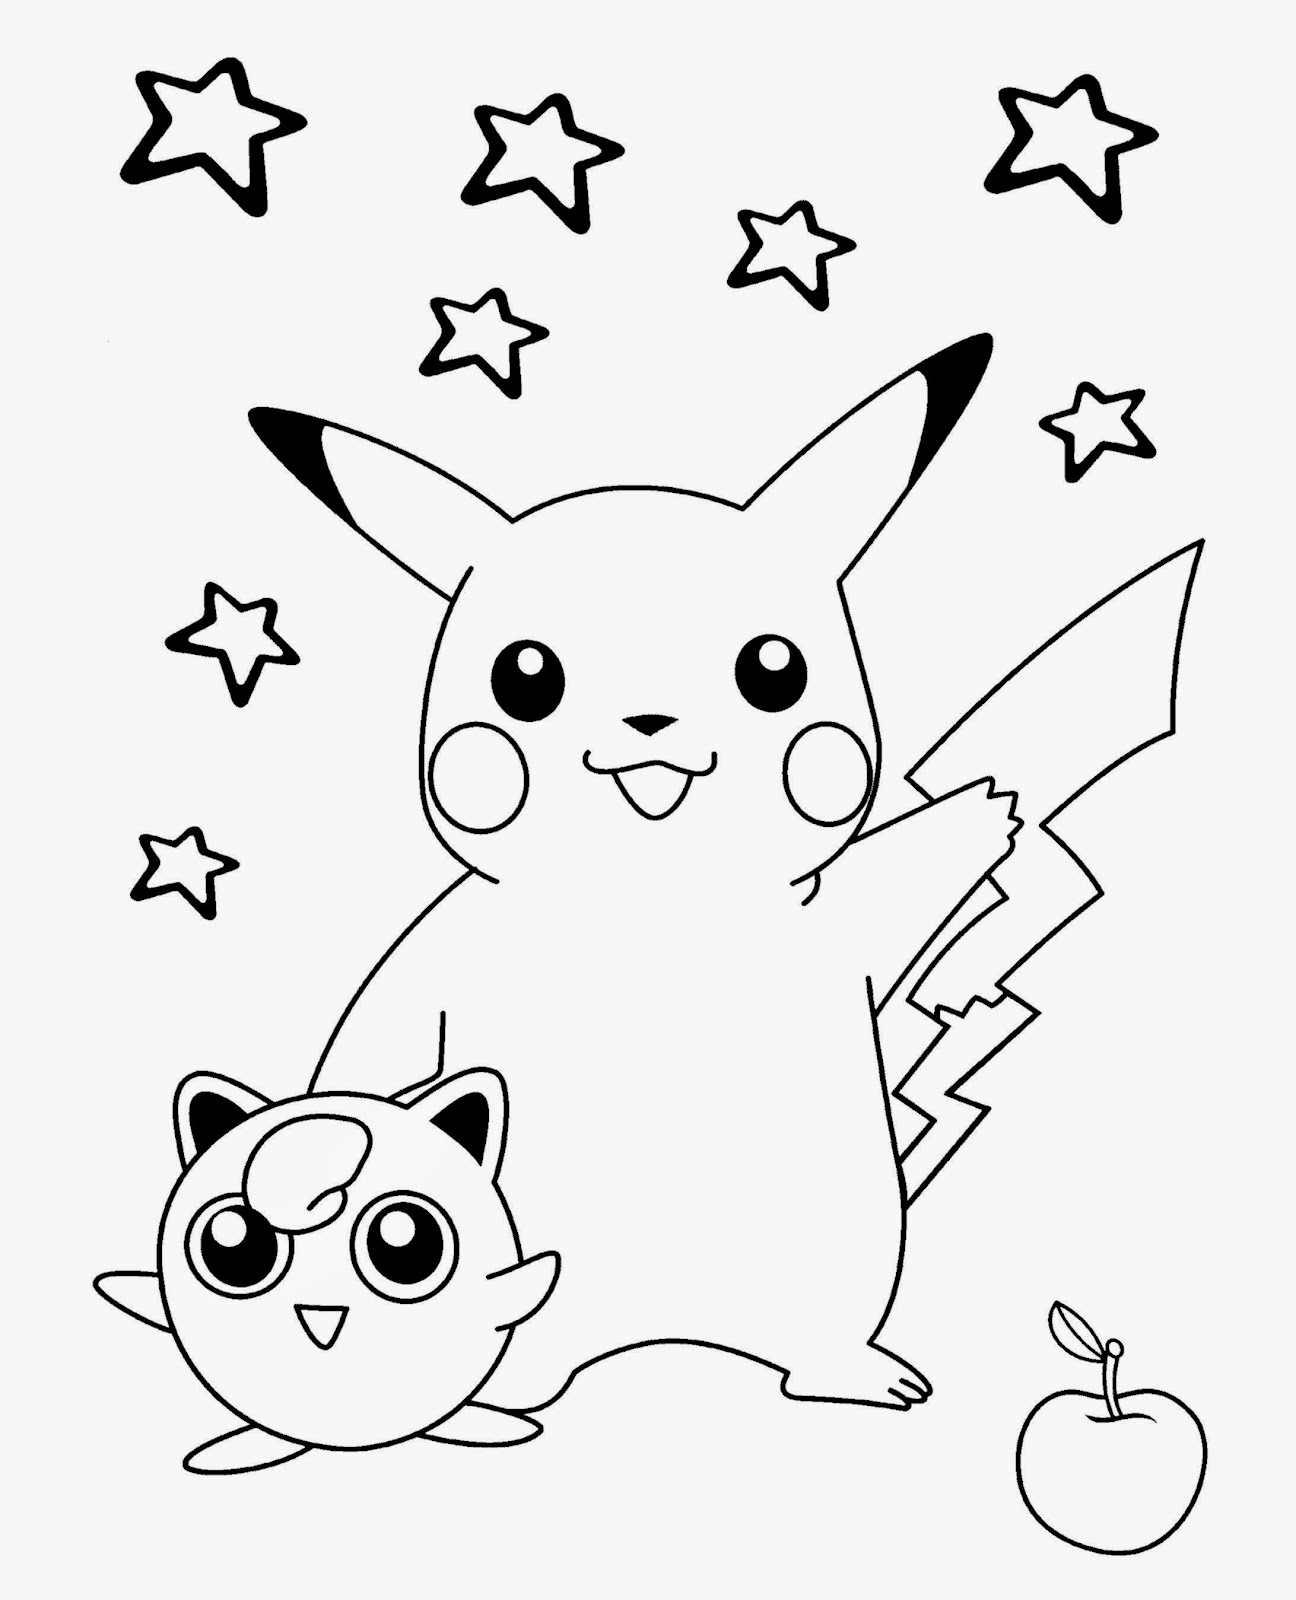 Free Printable Coloring Pages : Coloring pictures of pokemon free